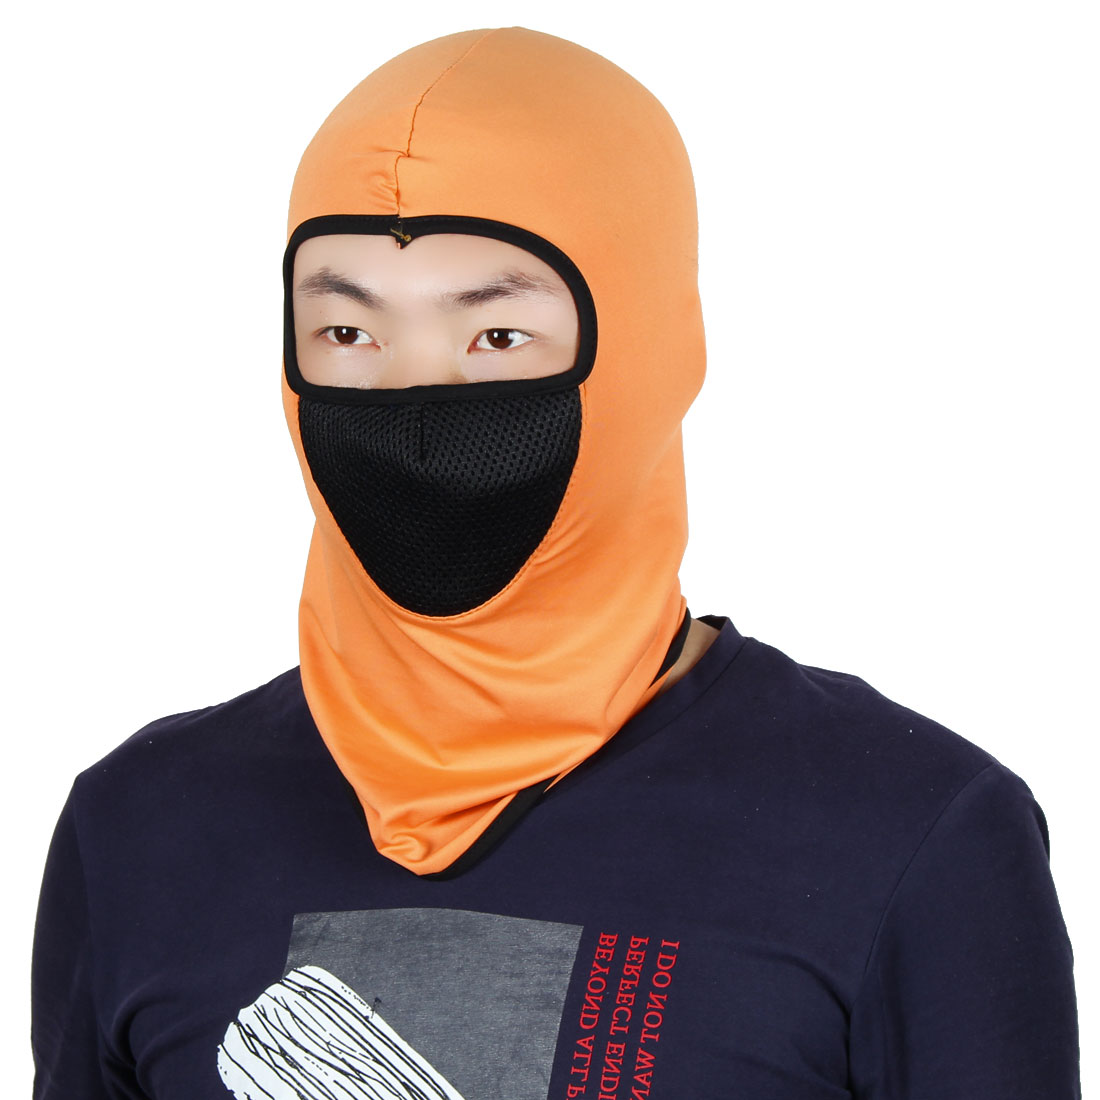 Full Face Mask Outdoor Sports Cycling Neck Protector Hat Helmet Balaclava Orange by Unique-Bargains